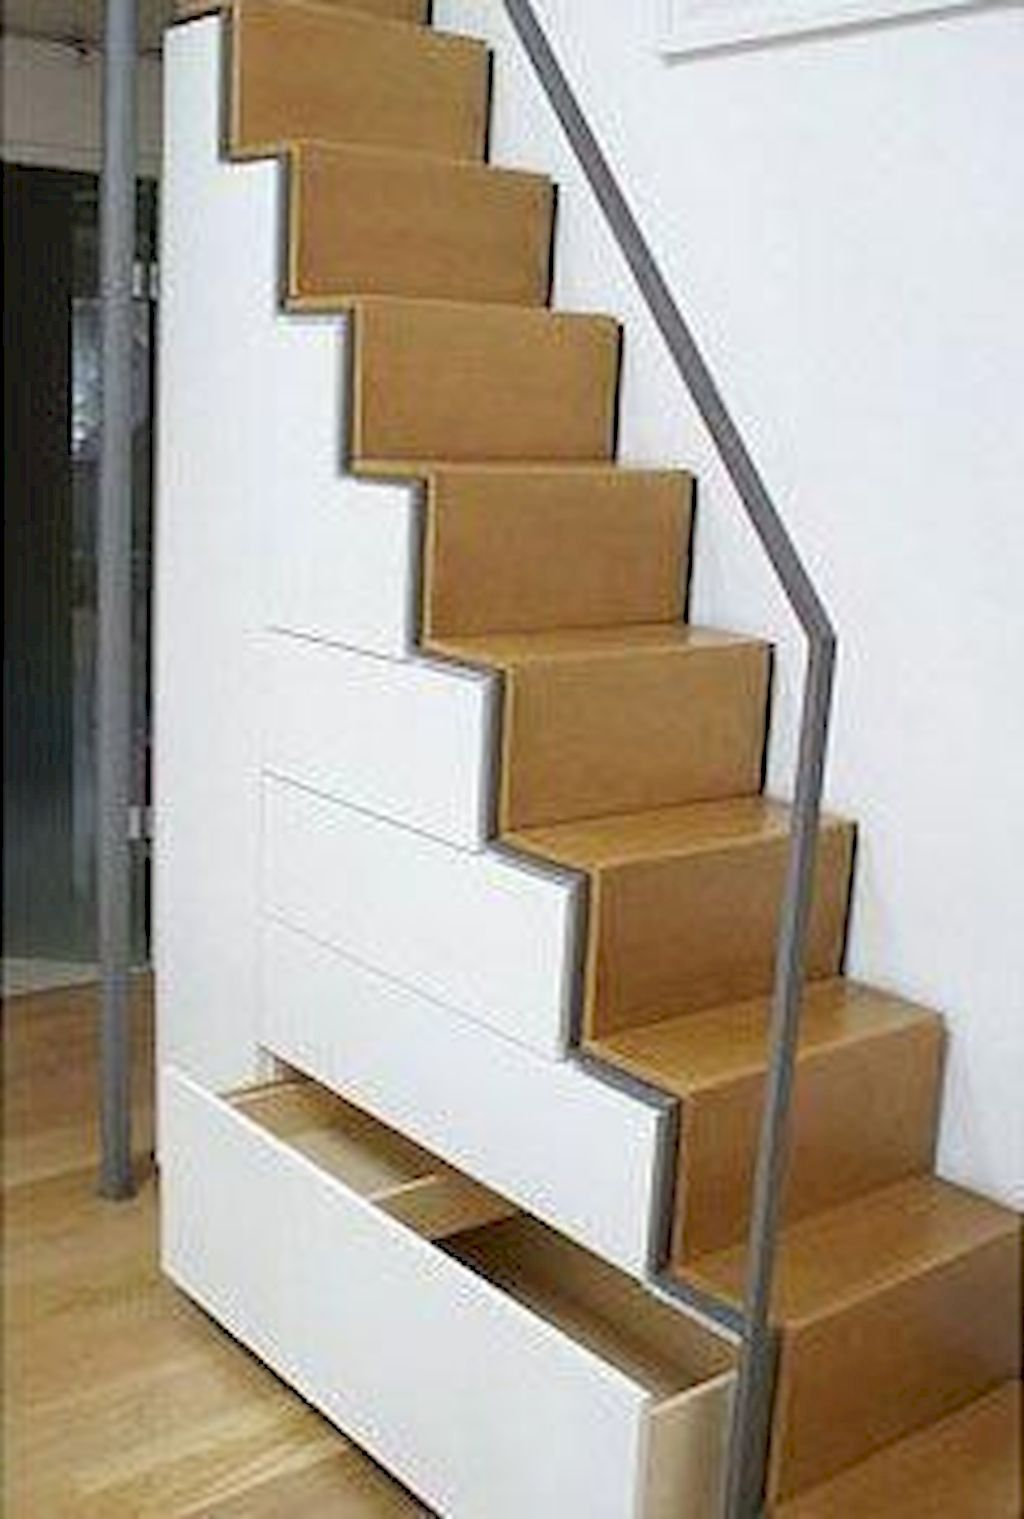 Dazzling Tips Choosing The Right Staircase Design For Your Home Attic Stairs Staircase Design Big Bathrooms